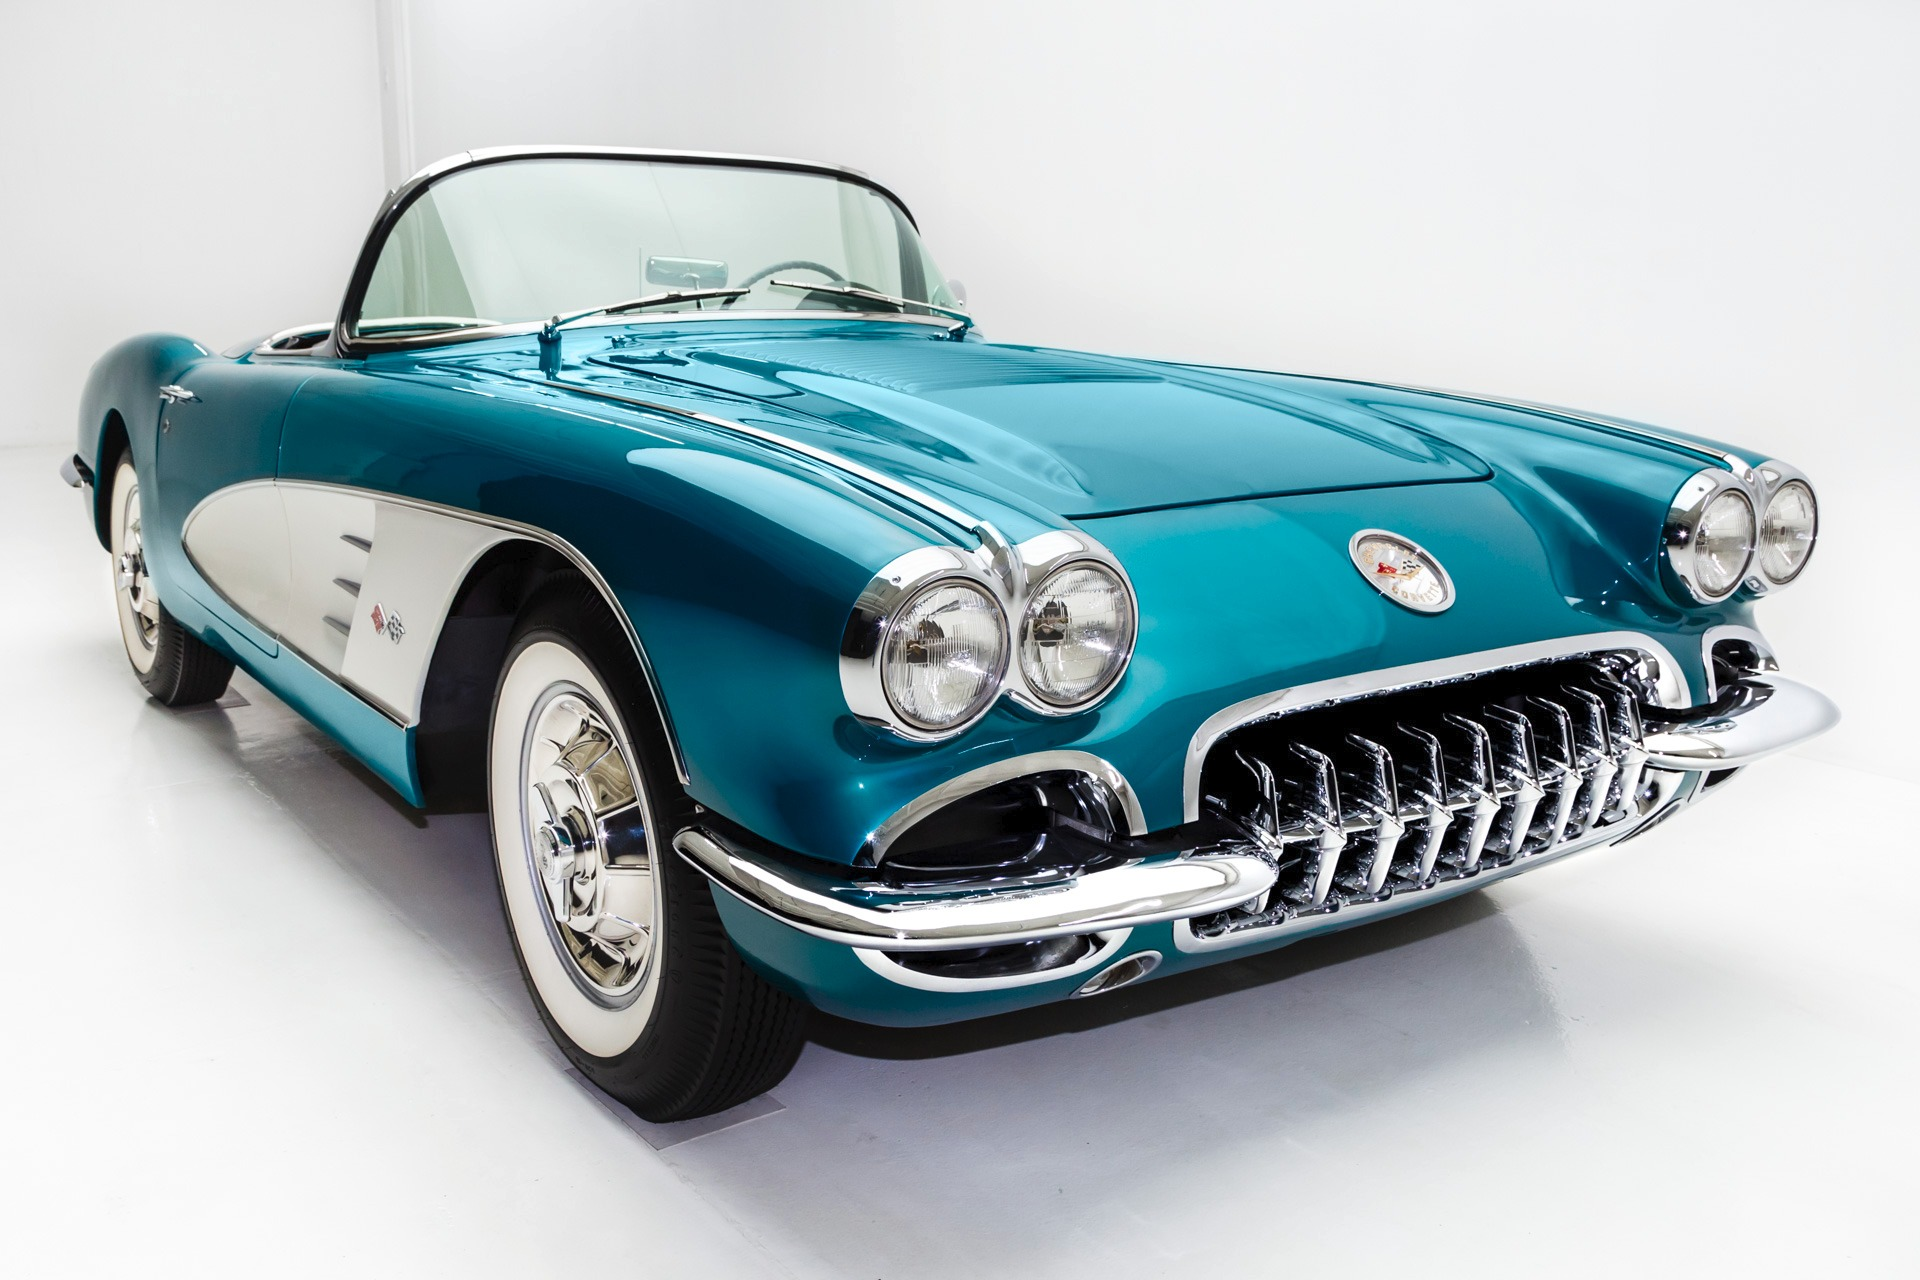 1958 Chevrolet Corvette Rare Regal Turquoise - American Dream ...